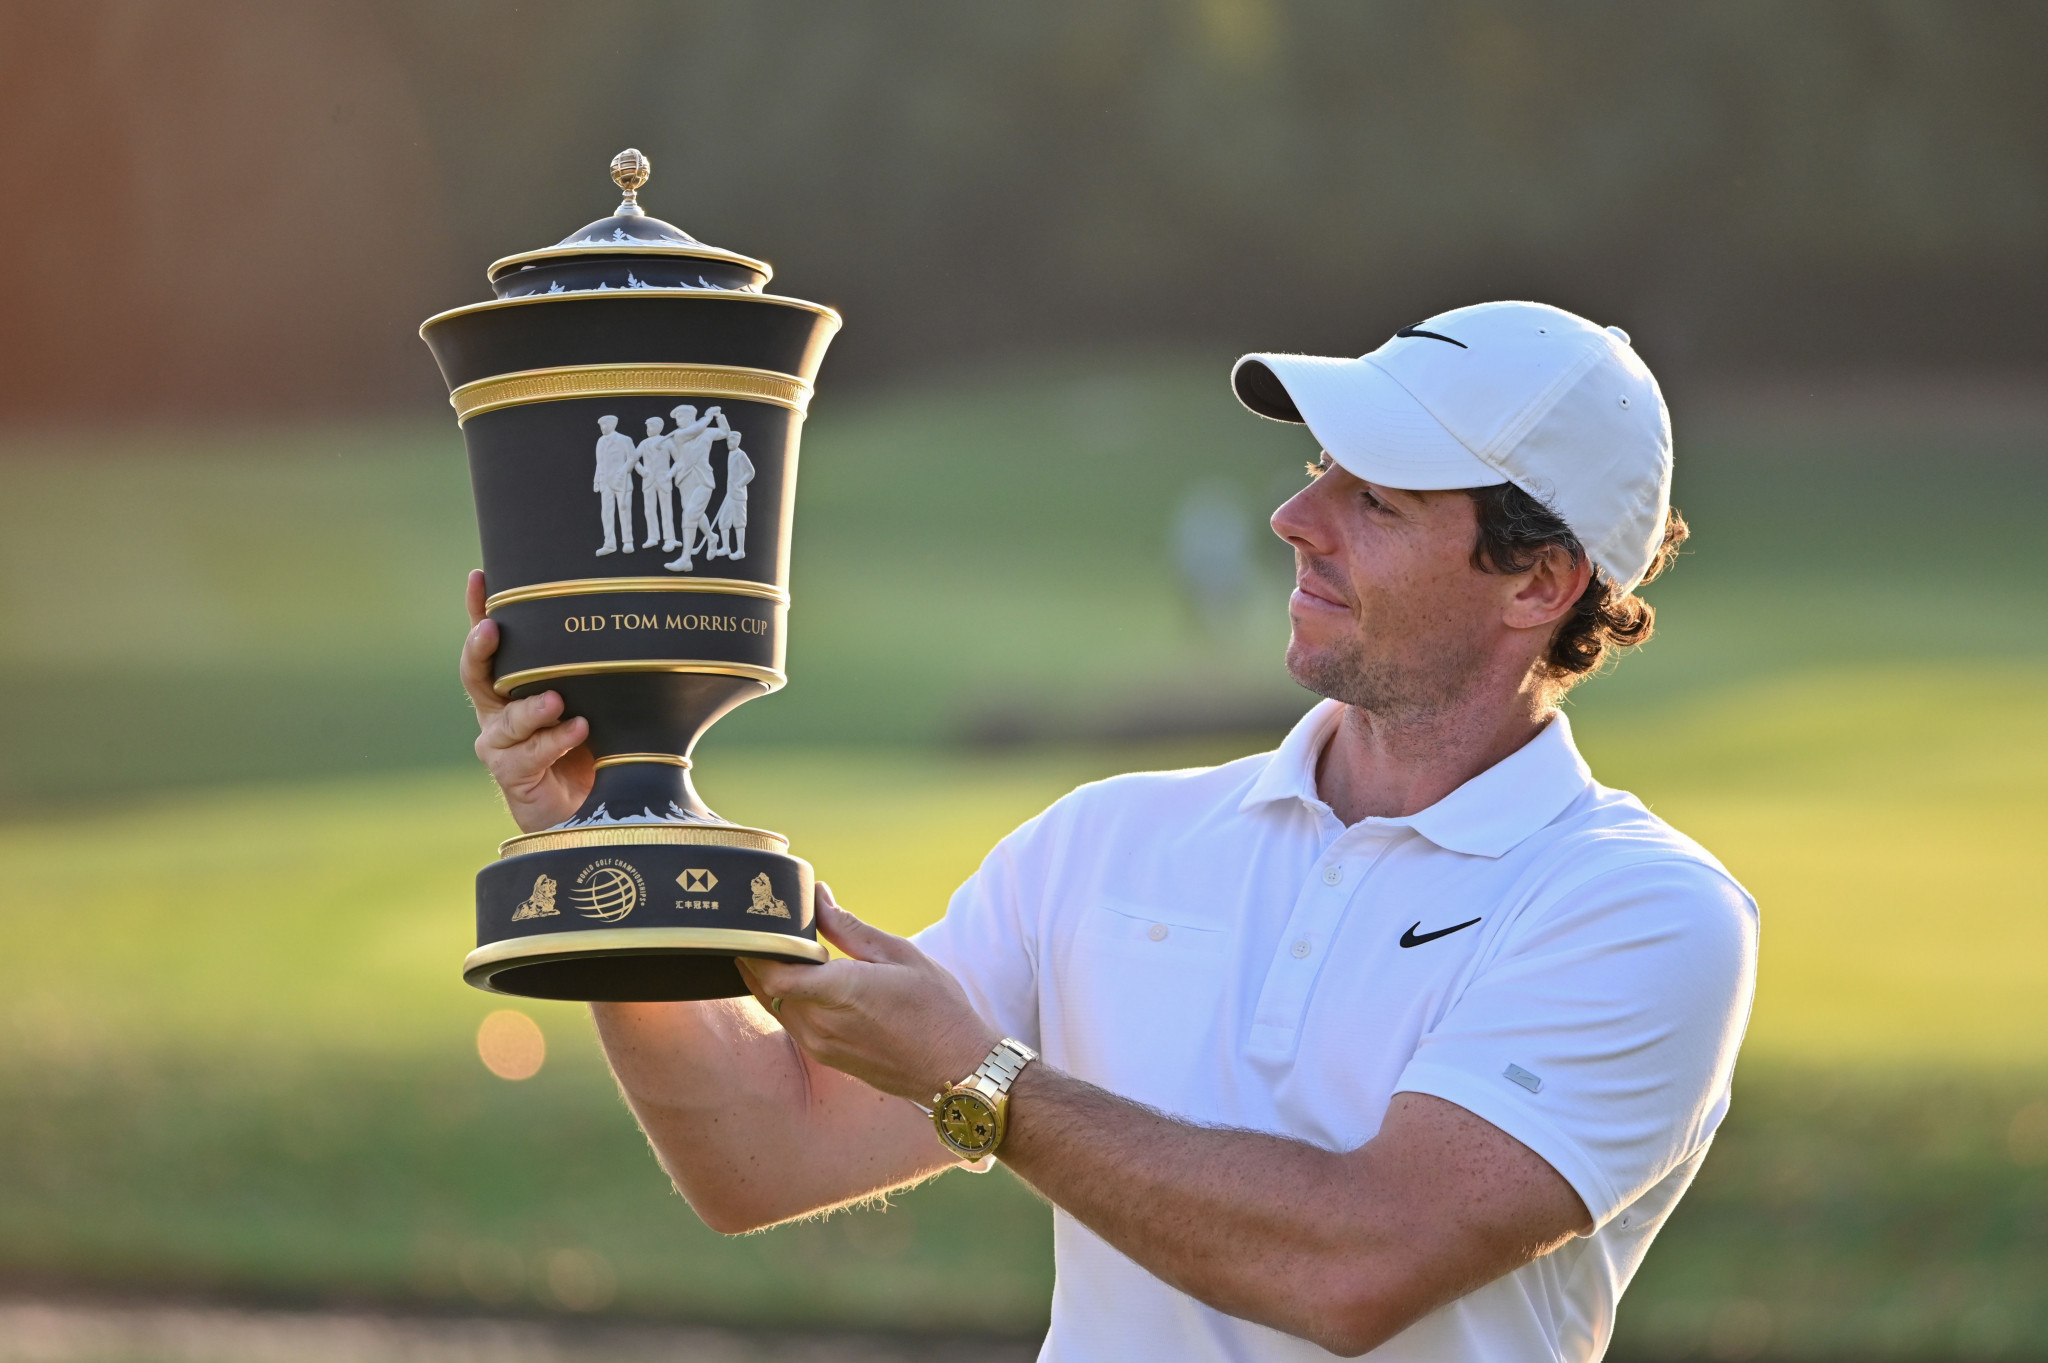 McIlroy beats Schauffele in play-off to win WGC-HSBC Champions